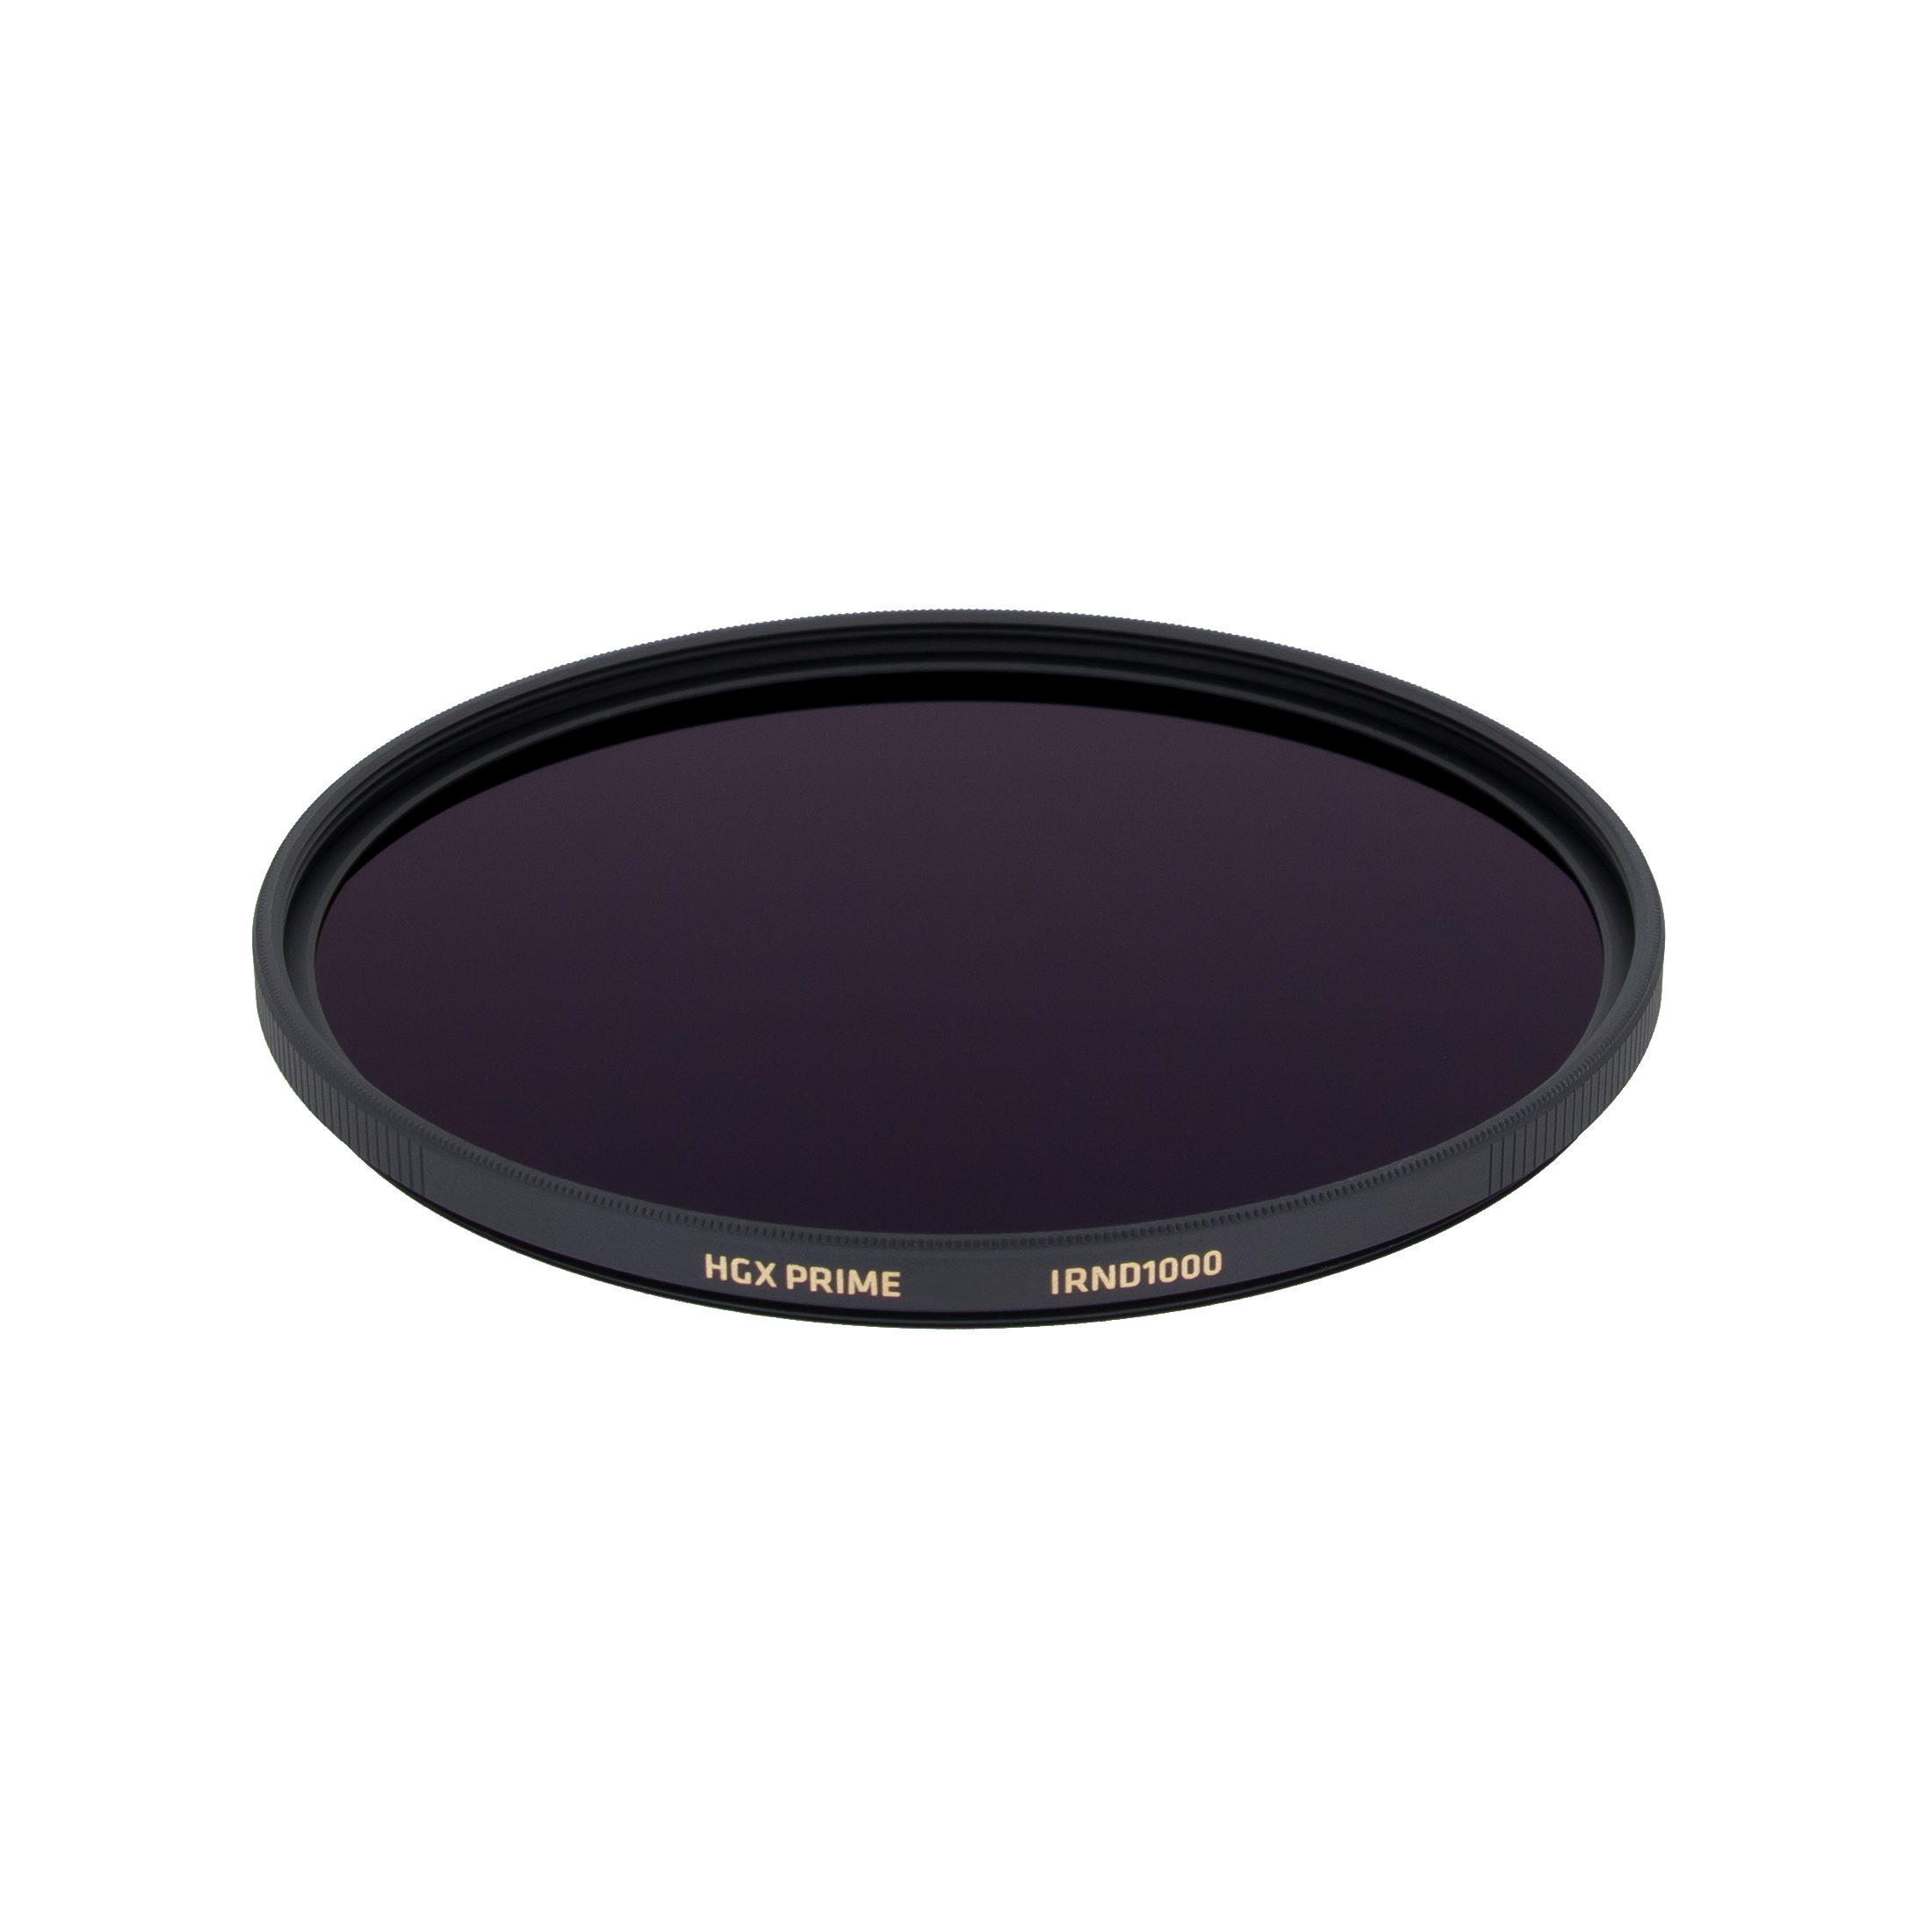 Promaster 6173 82mm IRND1000X HGX Prime Filter